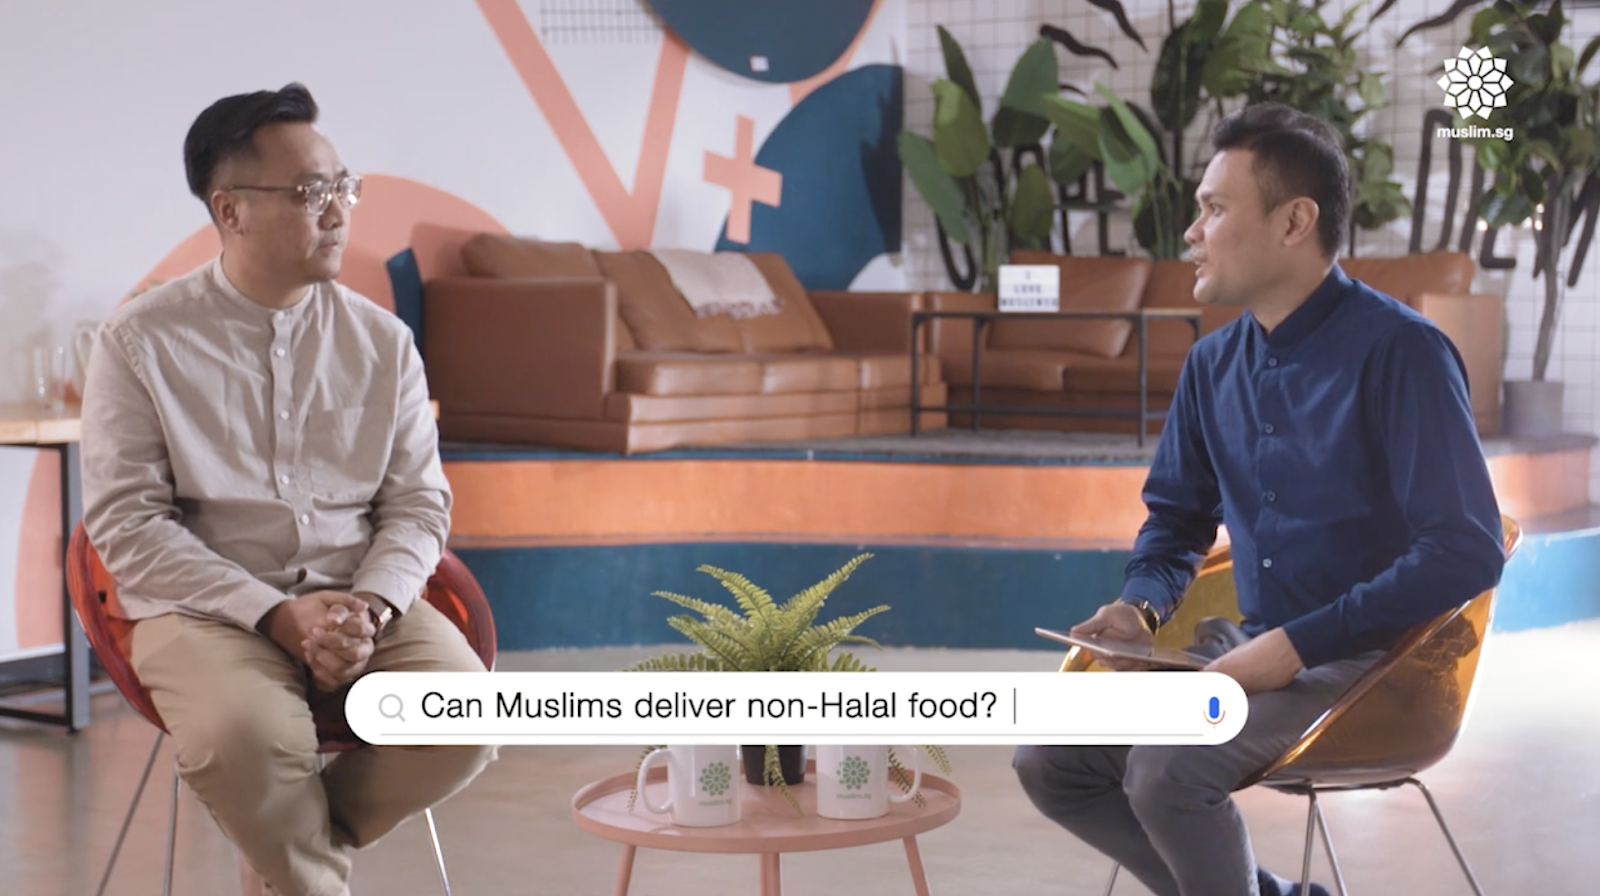 is it haram to deliver non halal food